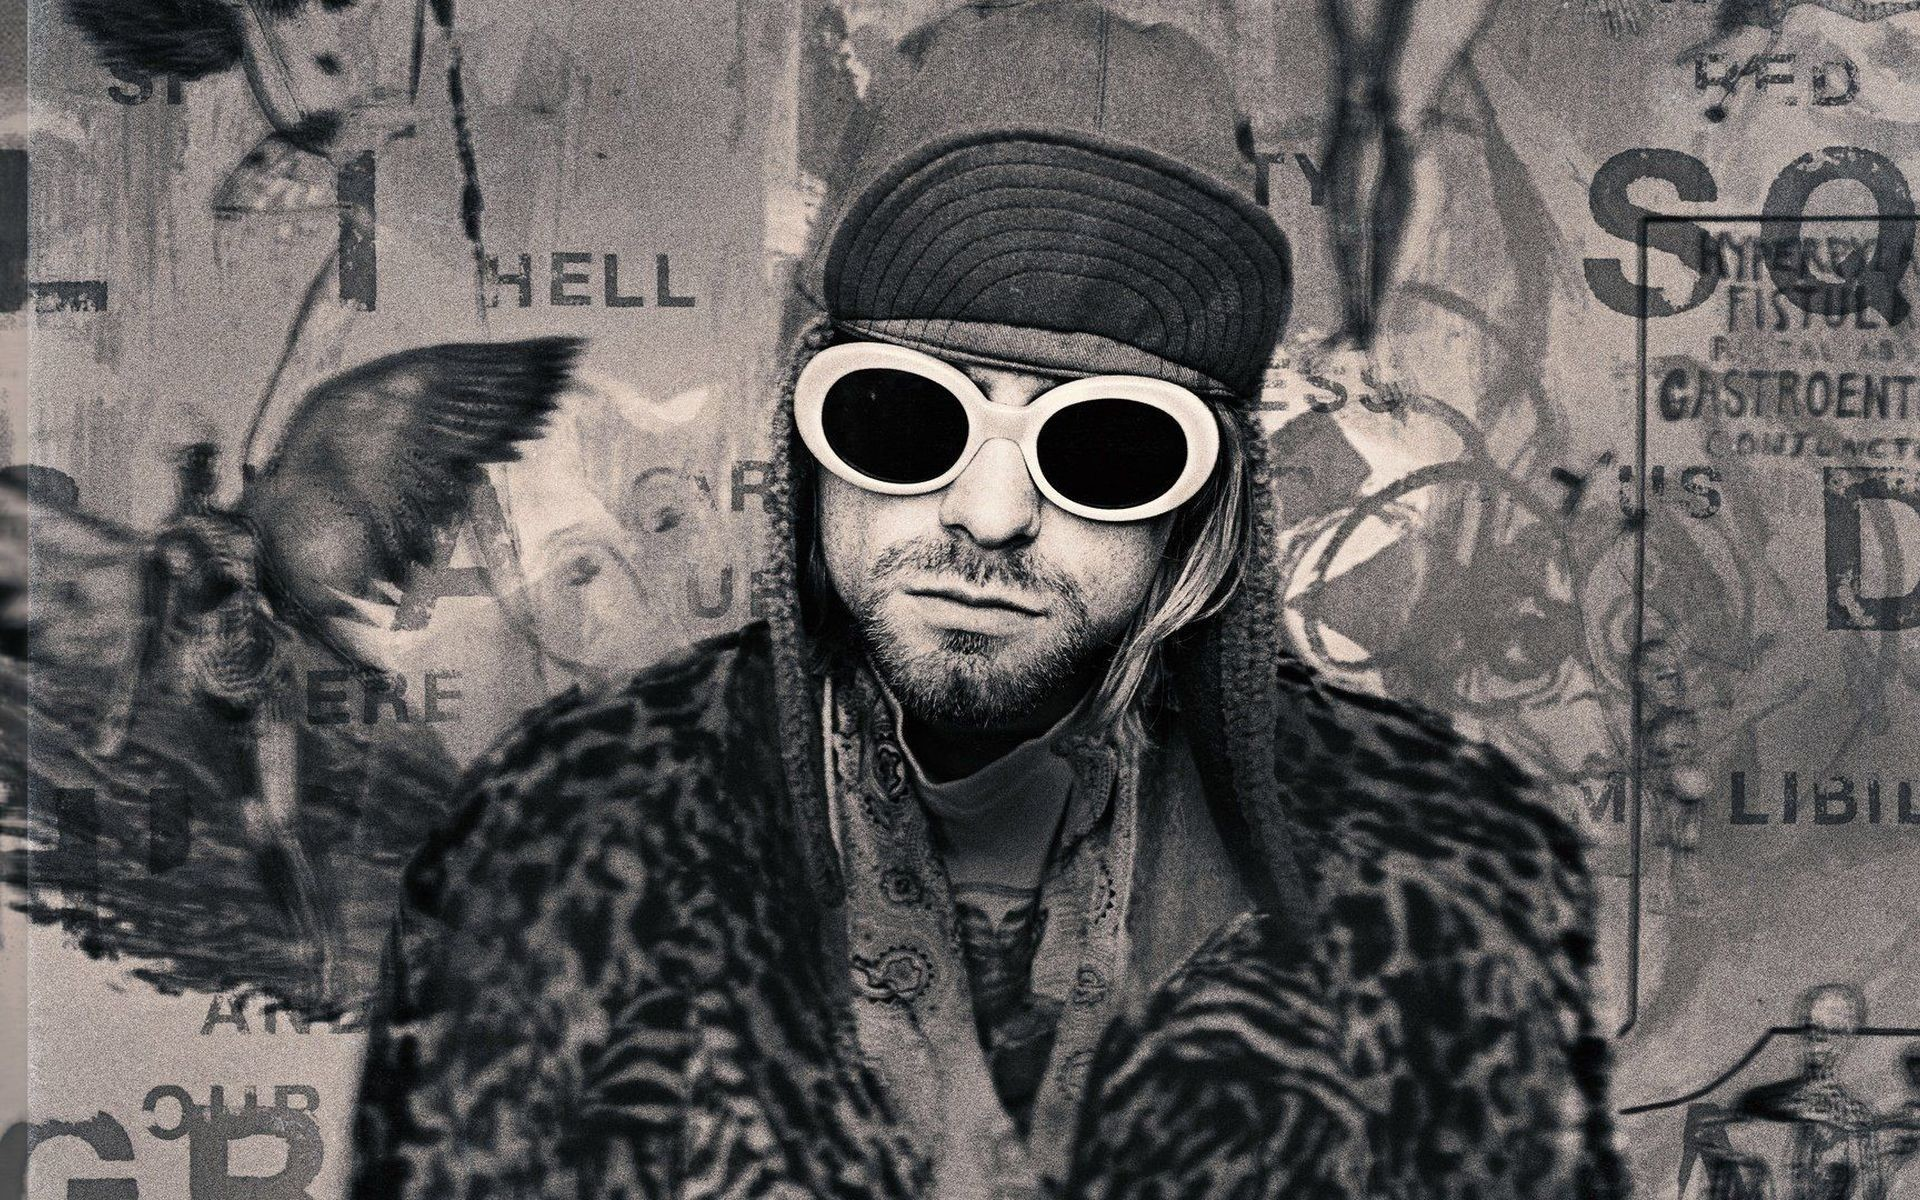 1920x1200 Kurt Cobain HD Wallpaper Picture Image Download Nirvana Smartphone